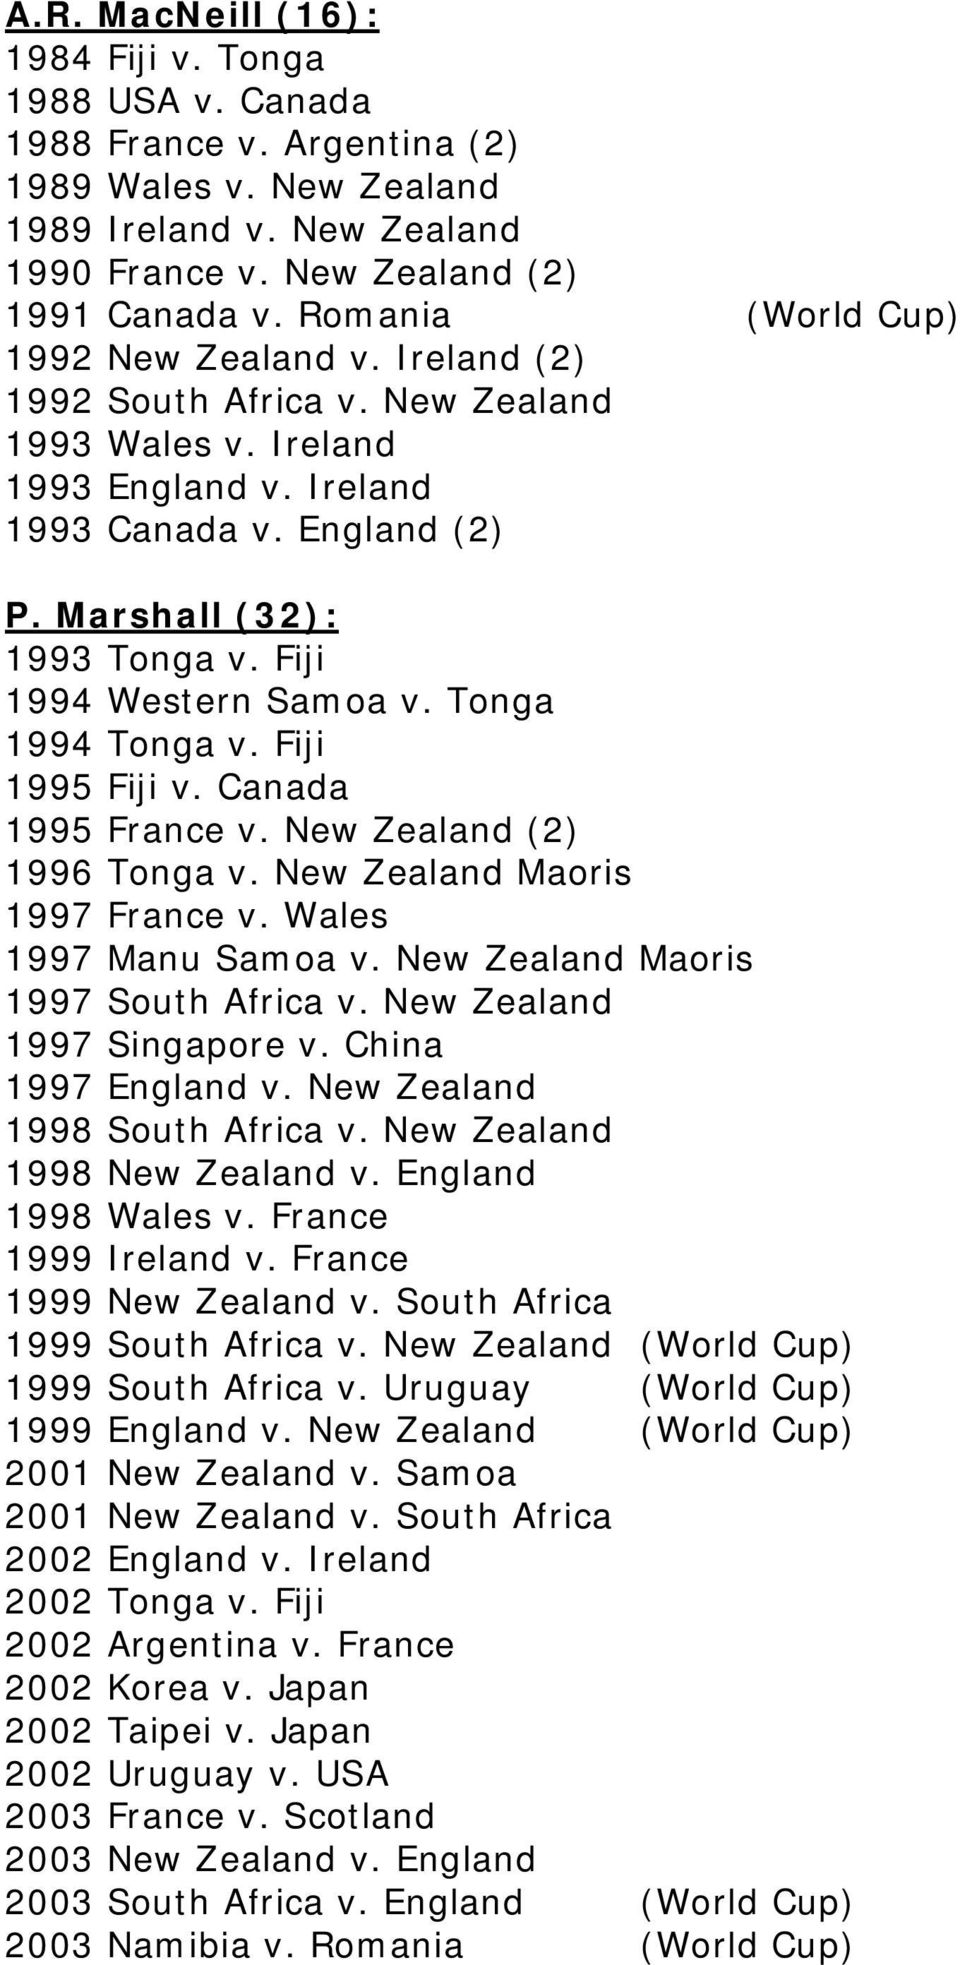 Fiji 1994 Western Samoa v. Tonga 1994 Tonga v. Fiji 1995 Fiji v. Canada 1995 France v. New Zealand (2) 1996 Tonga v. New Zealand Maoris 1997 France v. Wales 1997 Manu Samoa v.